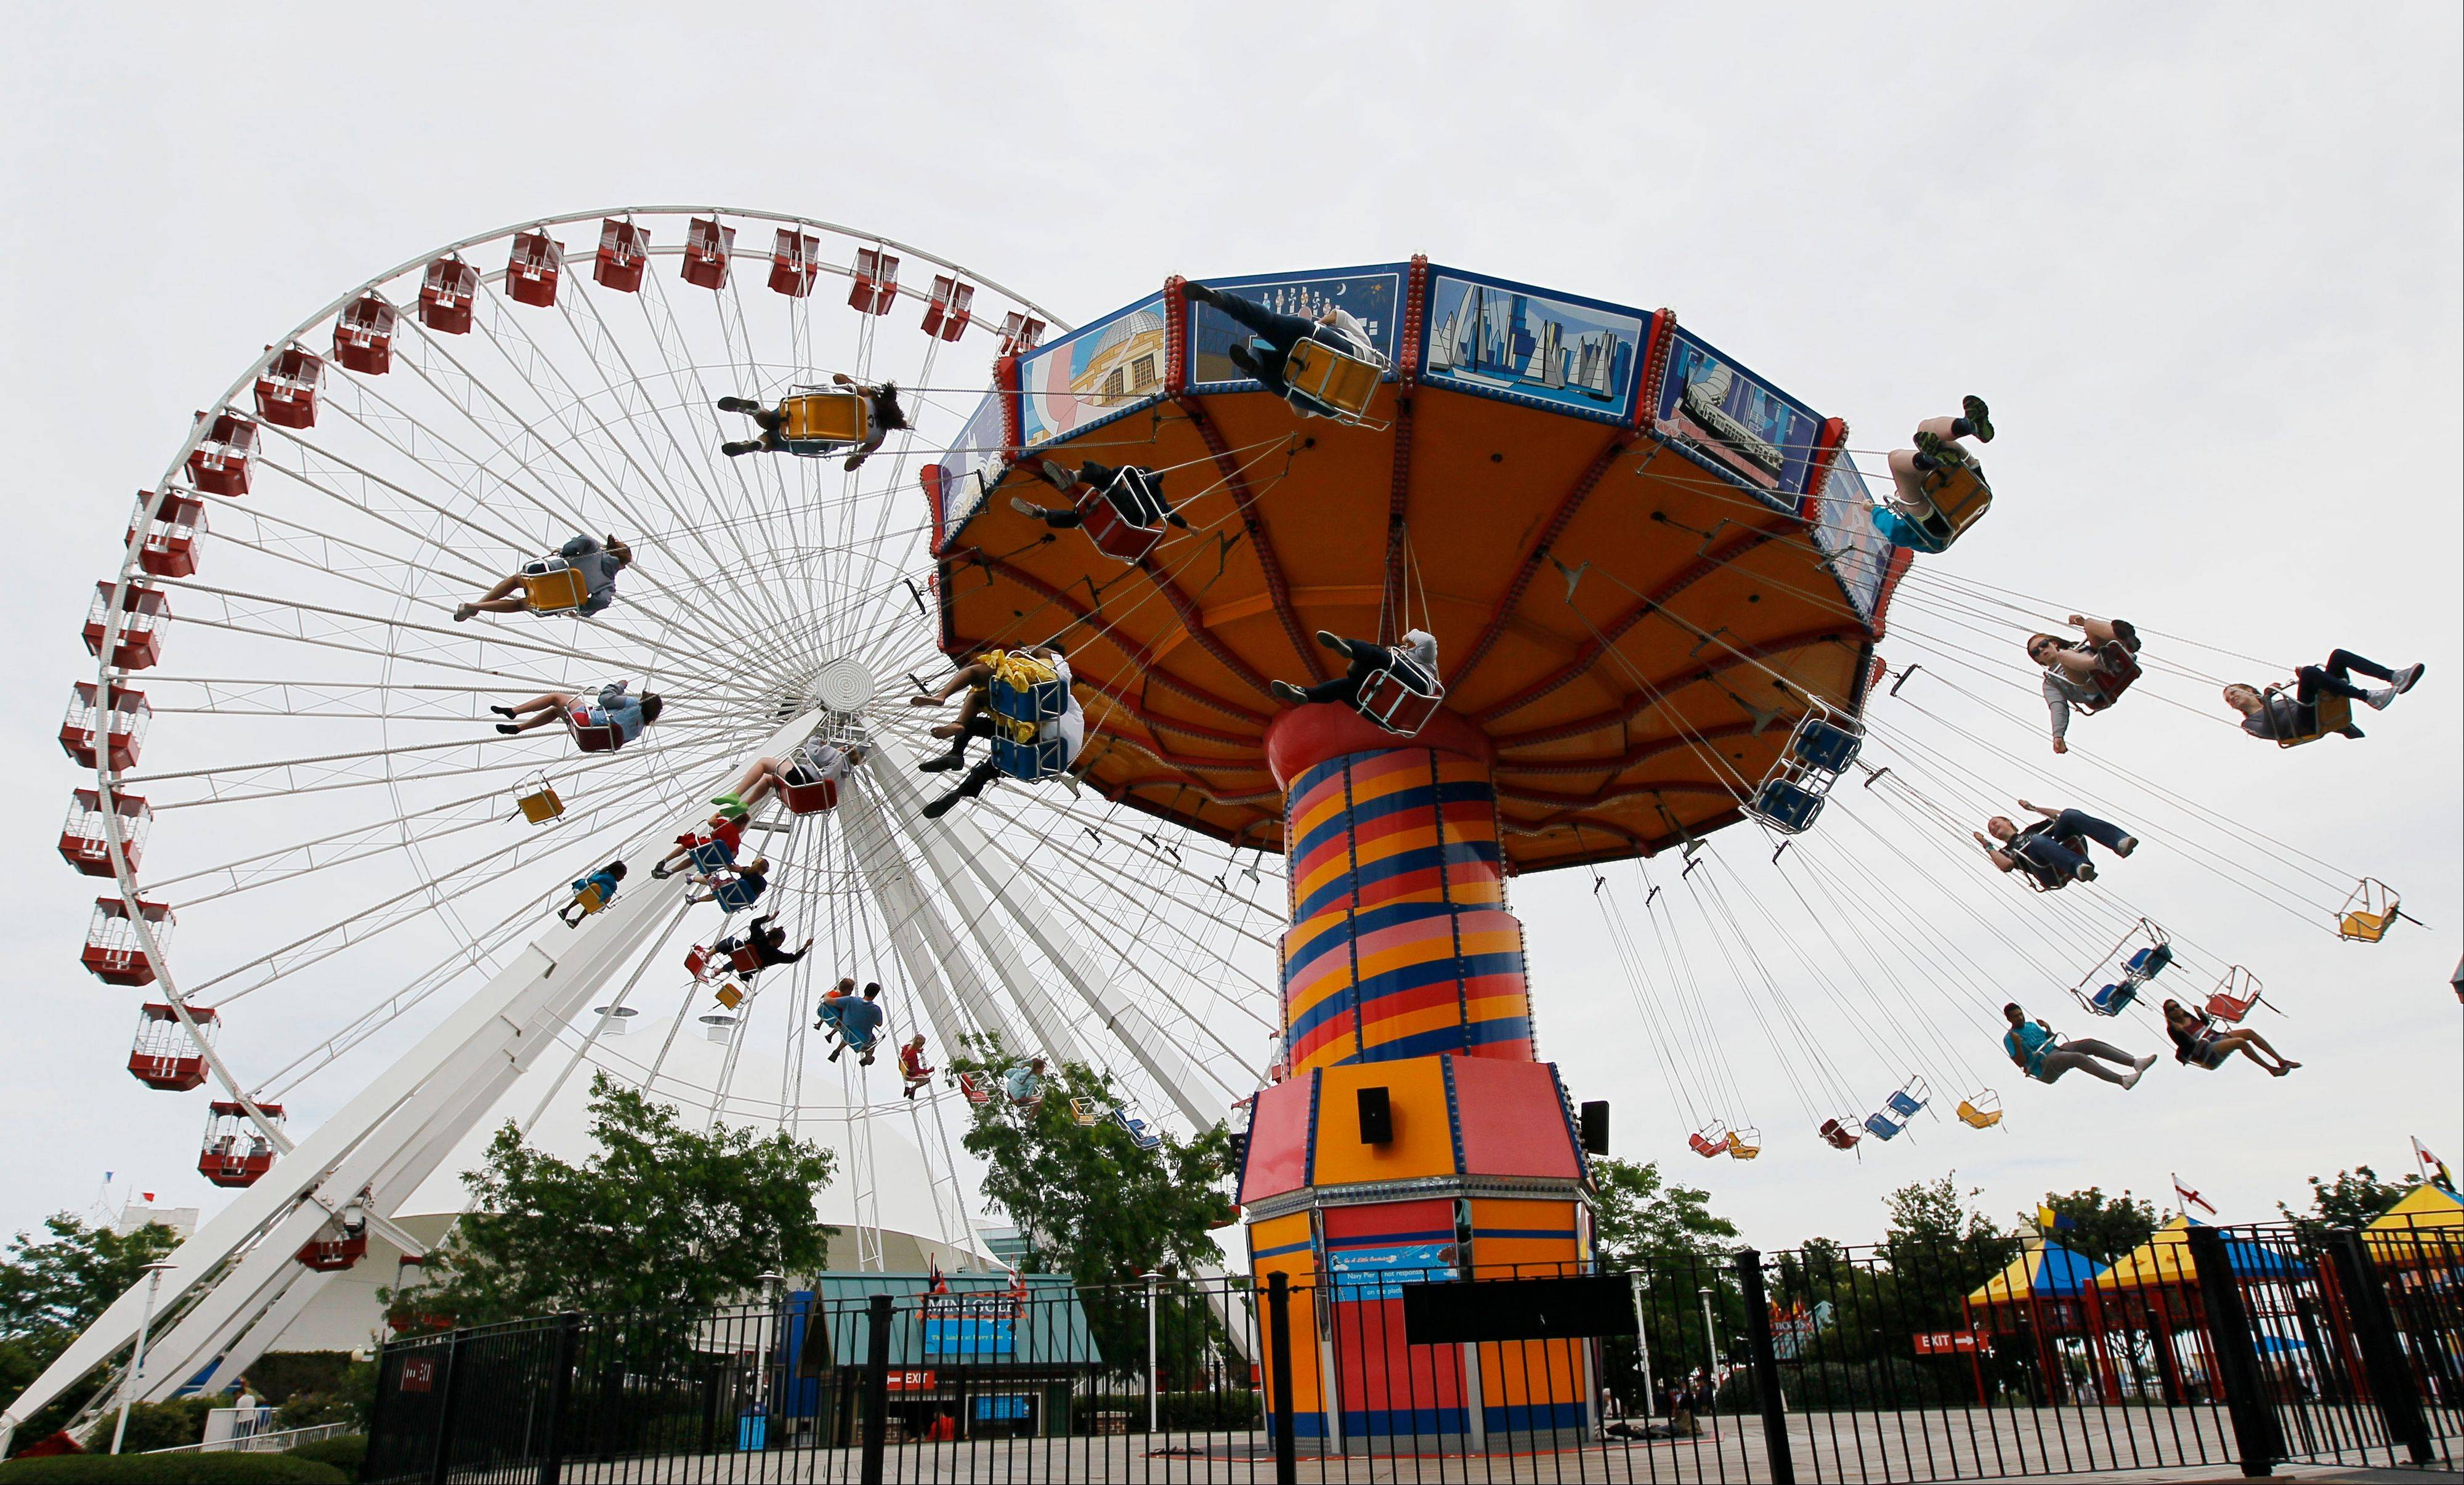 Clinton Shepherd, park operations manager at the Navy Pier, rode Navy Pier�s Ferris wheel for more than two days over the weekend, bringing the world record for the longest ride to the birthplace of the amusement park favorite.